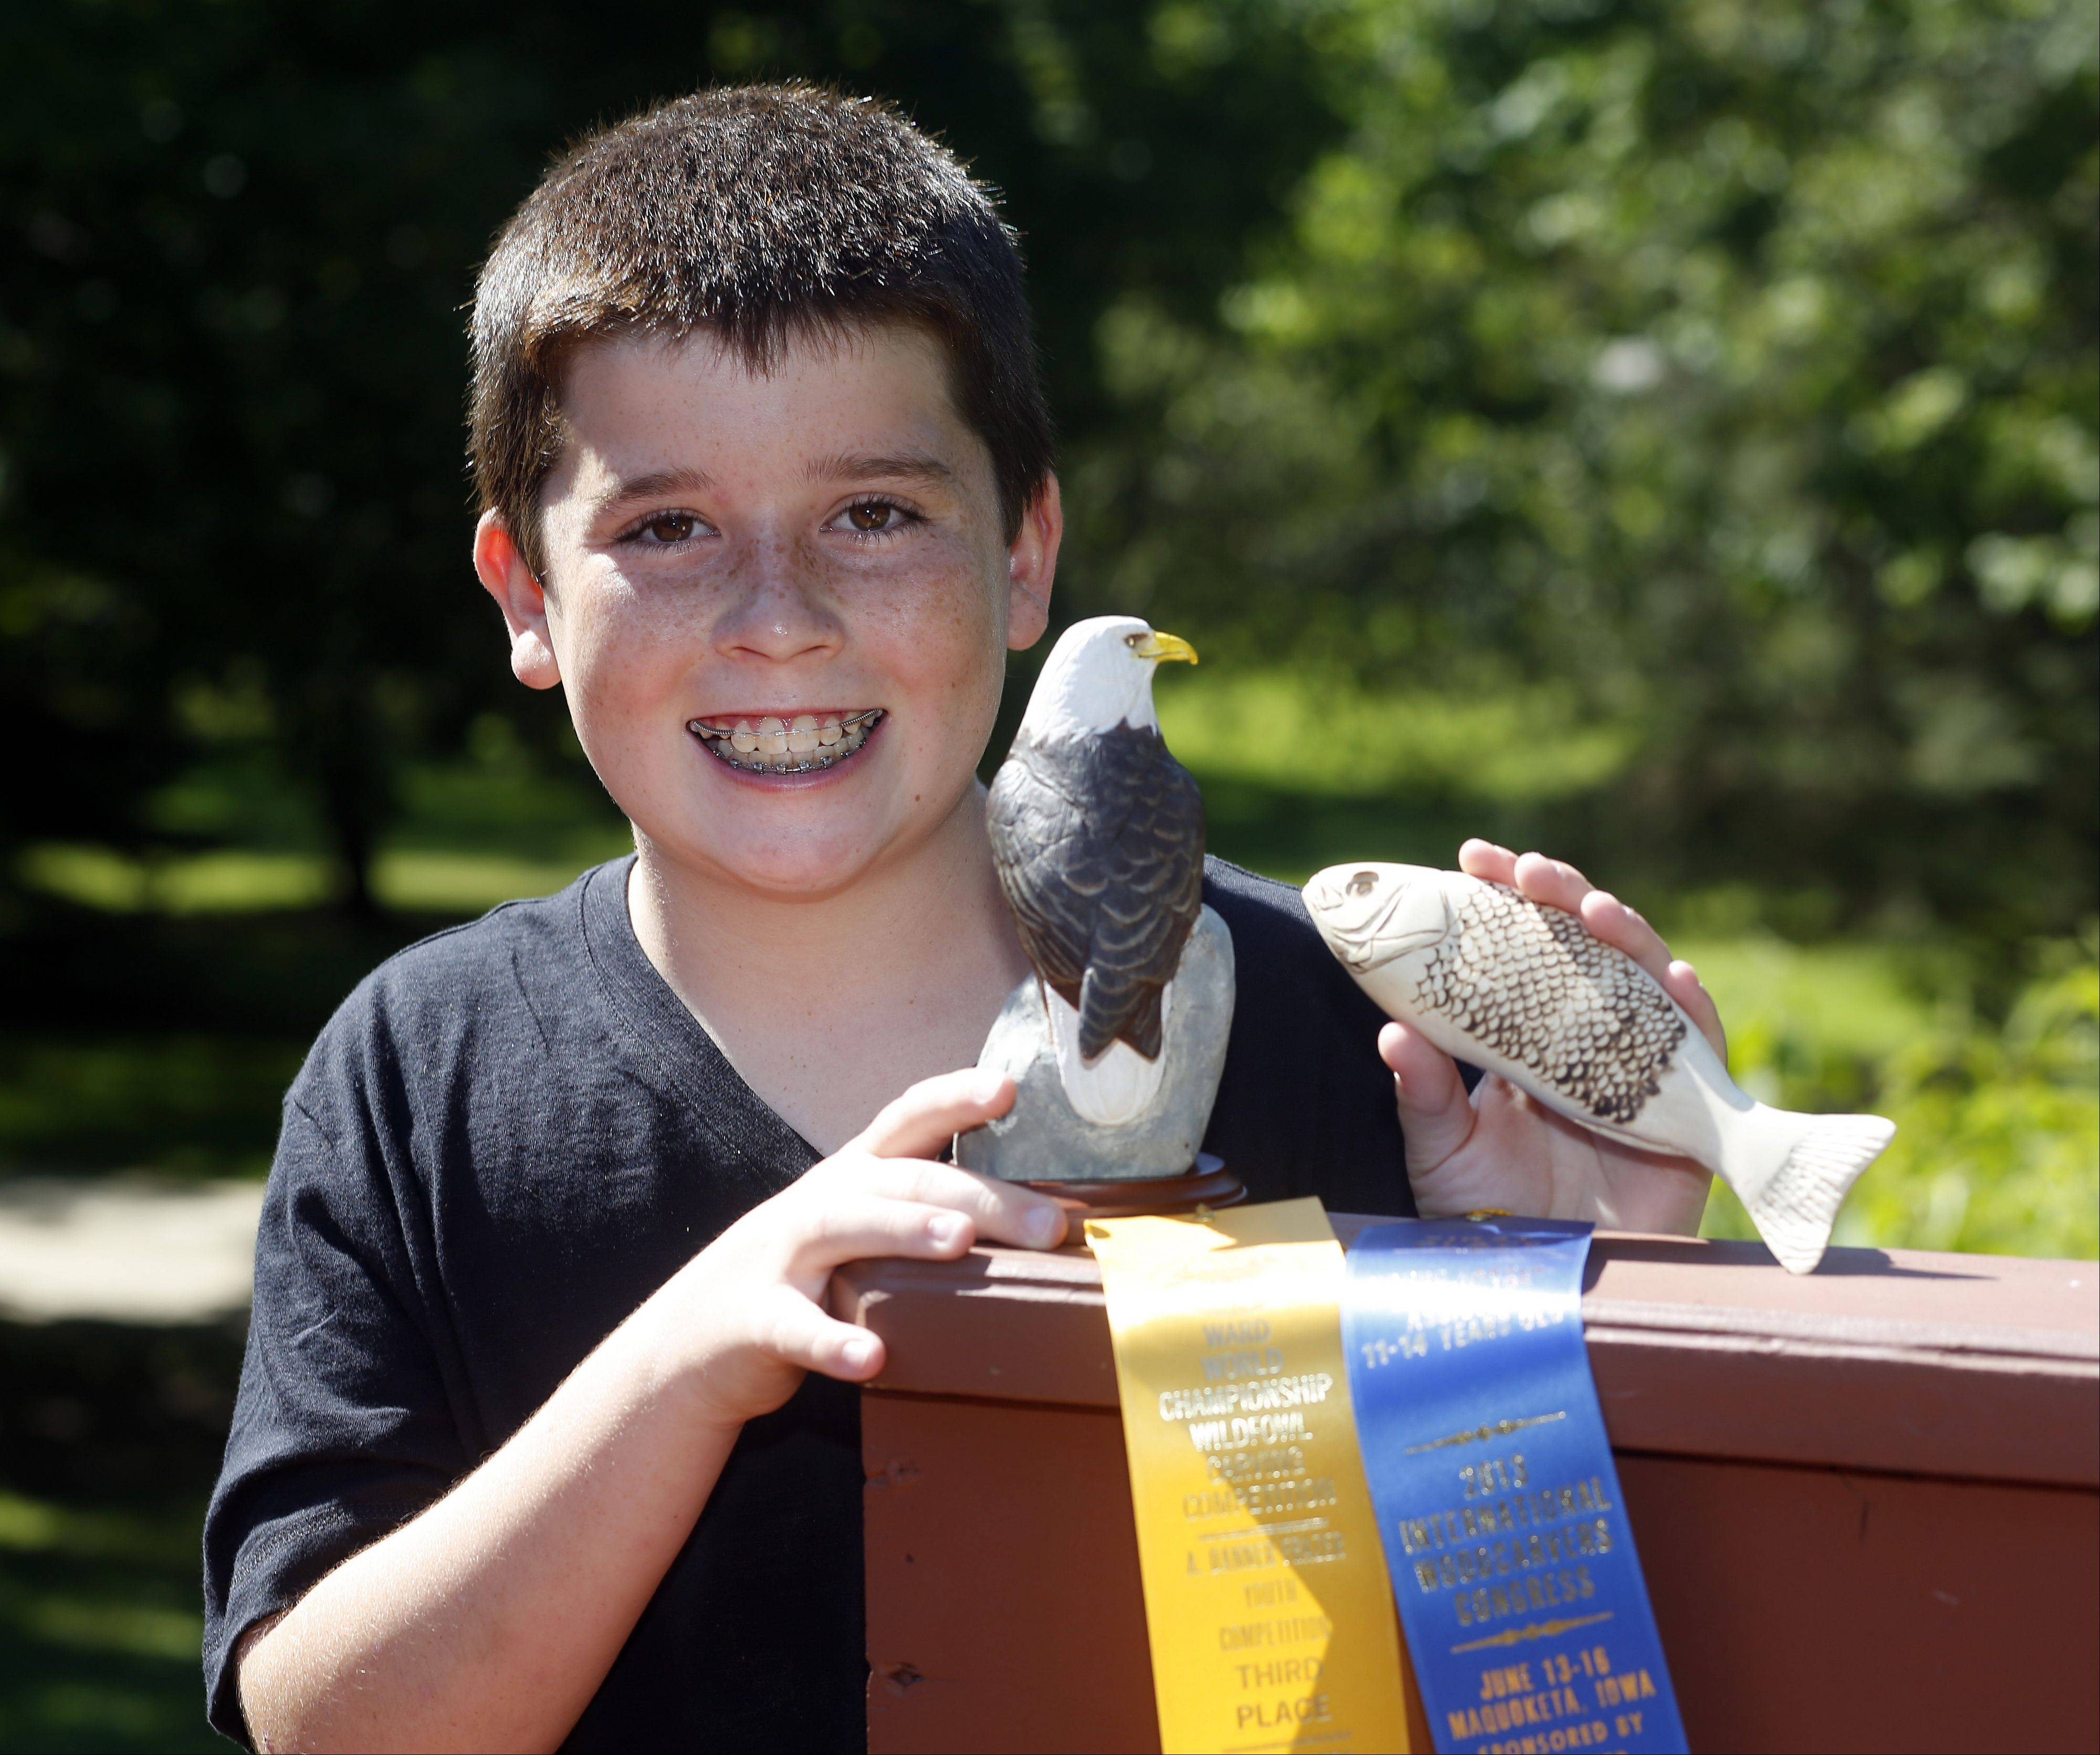 Shane Cloonan took third in his category and age group at the Ward World Championship Wildfowl Carving Competition in Maryland, and first place in his age group at the International Woodcarvers Congress competition in Iowa.